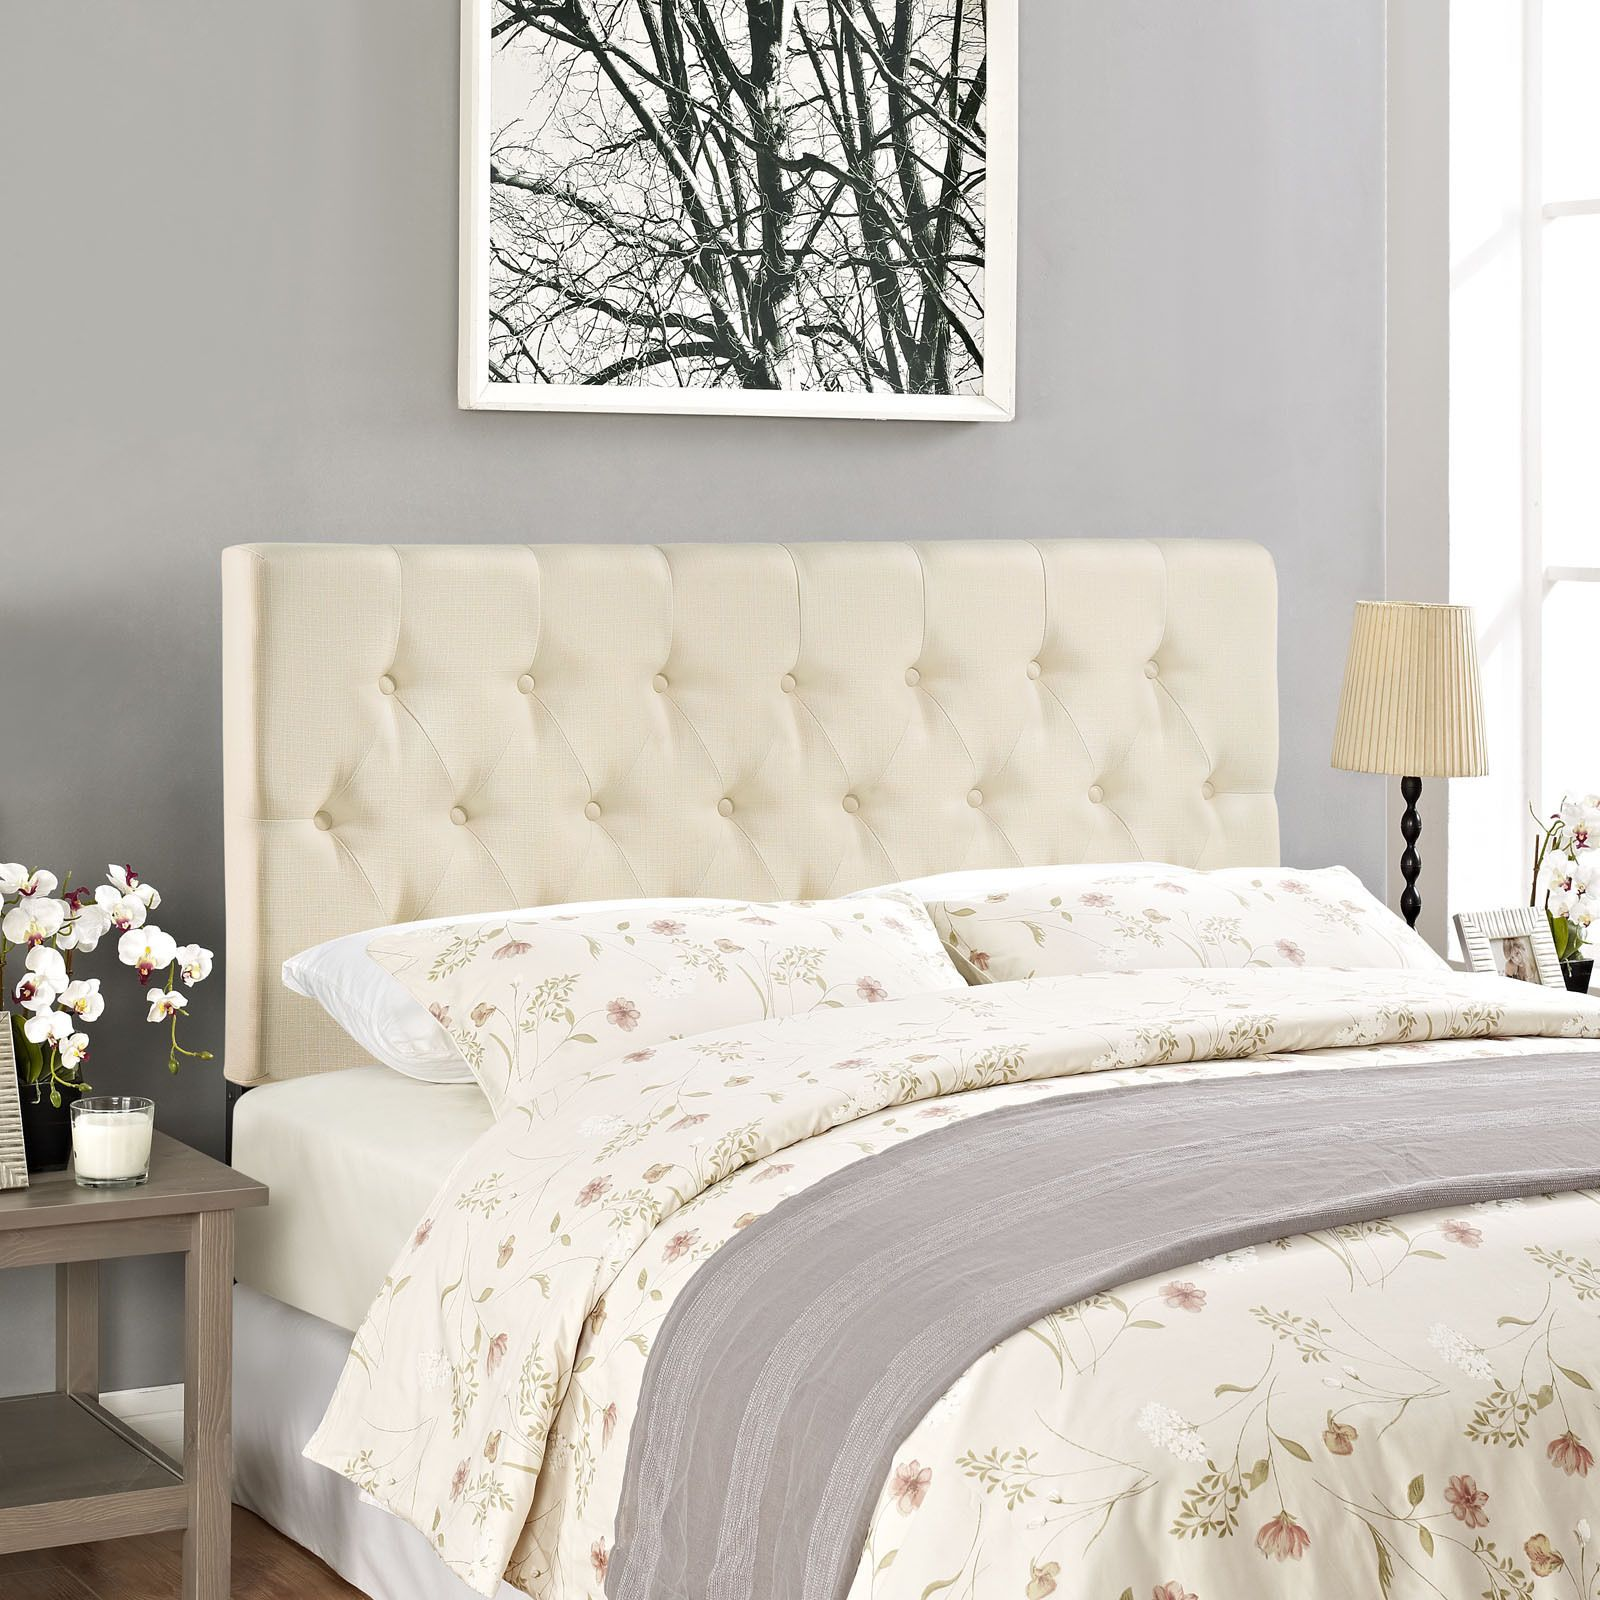 Enjoy The Beautiful Clique Headboard Design In Your Room This Gorgeous On Tufted Upholstered